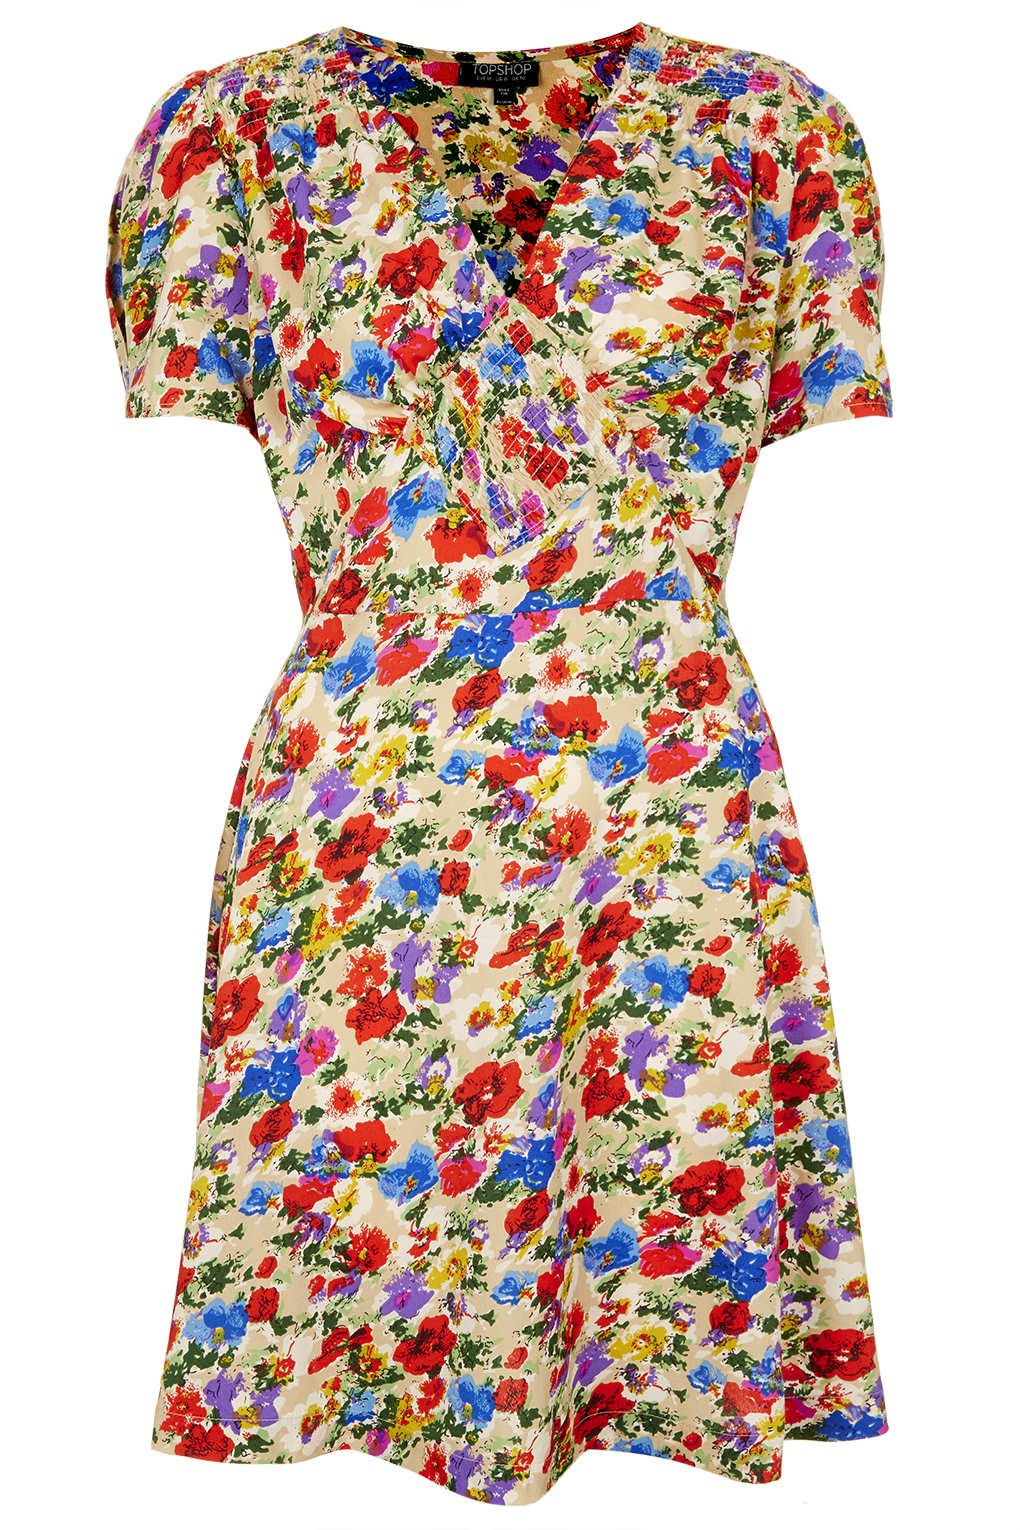 Poppy Flower Dress - Better Choice 2017